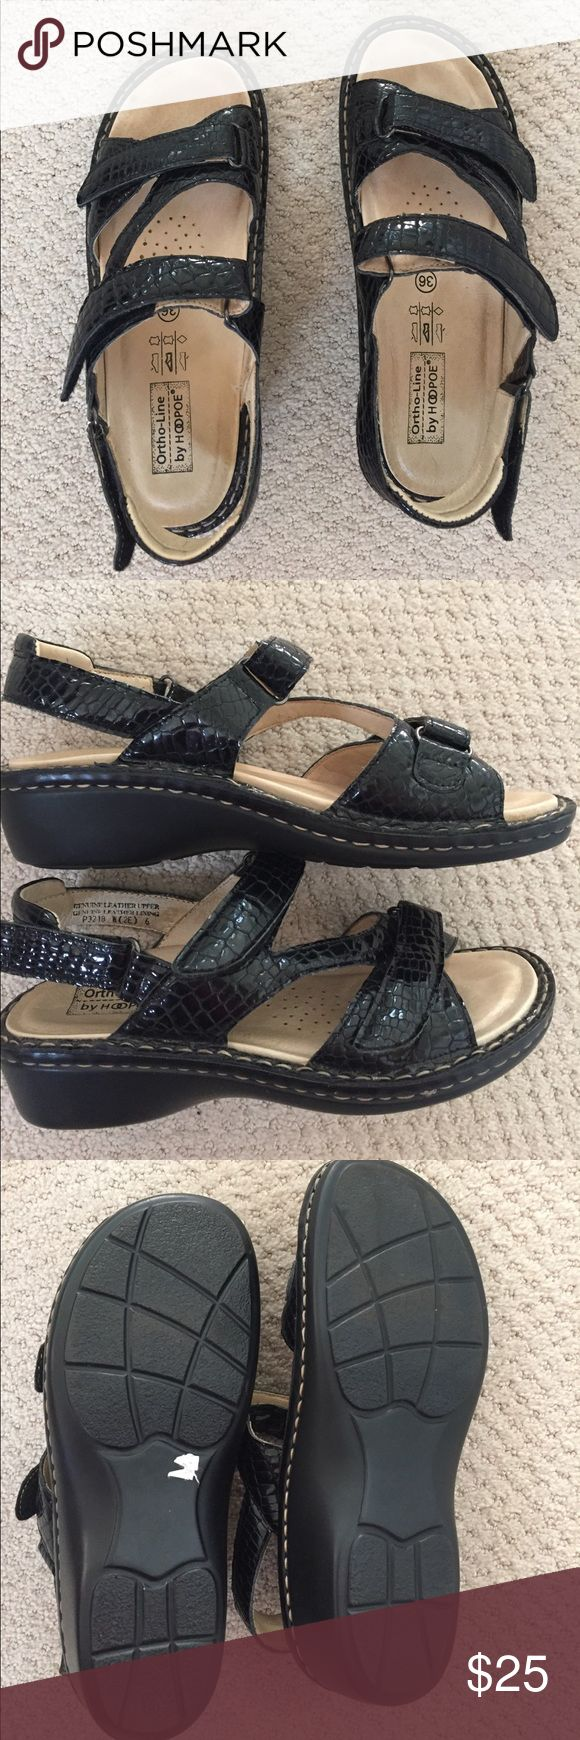 Orthopedic sandals Like new condition! Worn inside the house once! Genuine leather upper lining. hoopoe Shoes Sandals